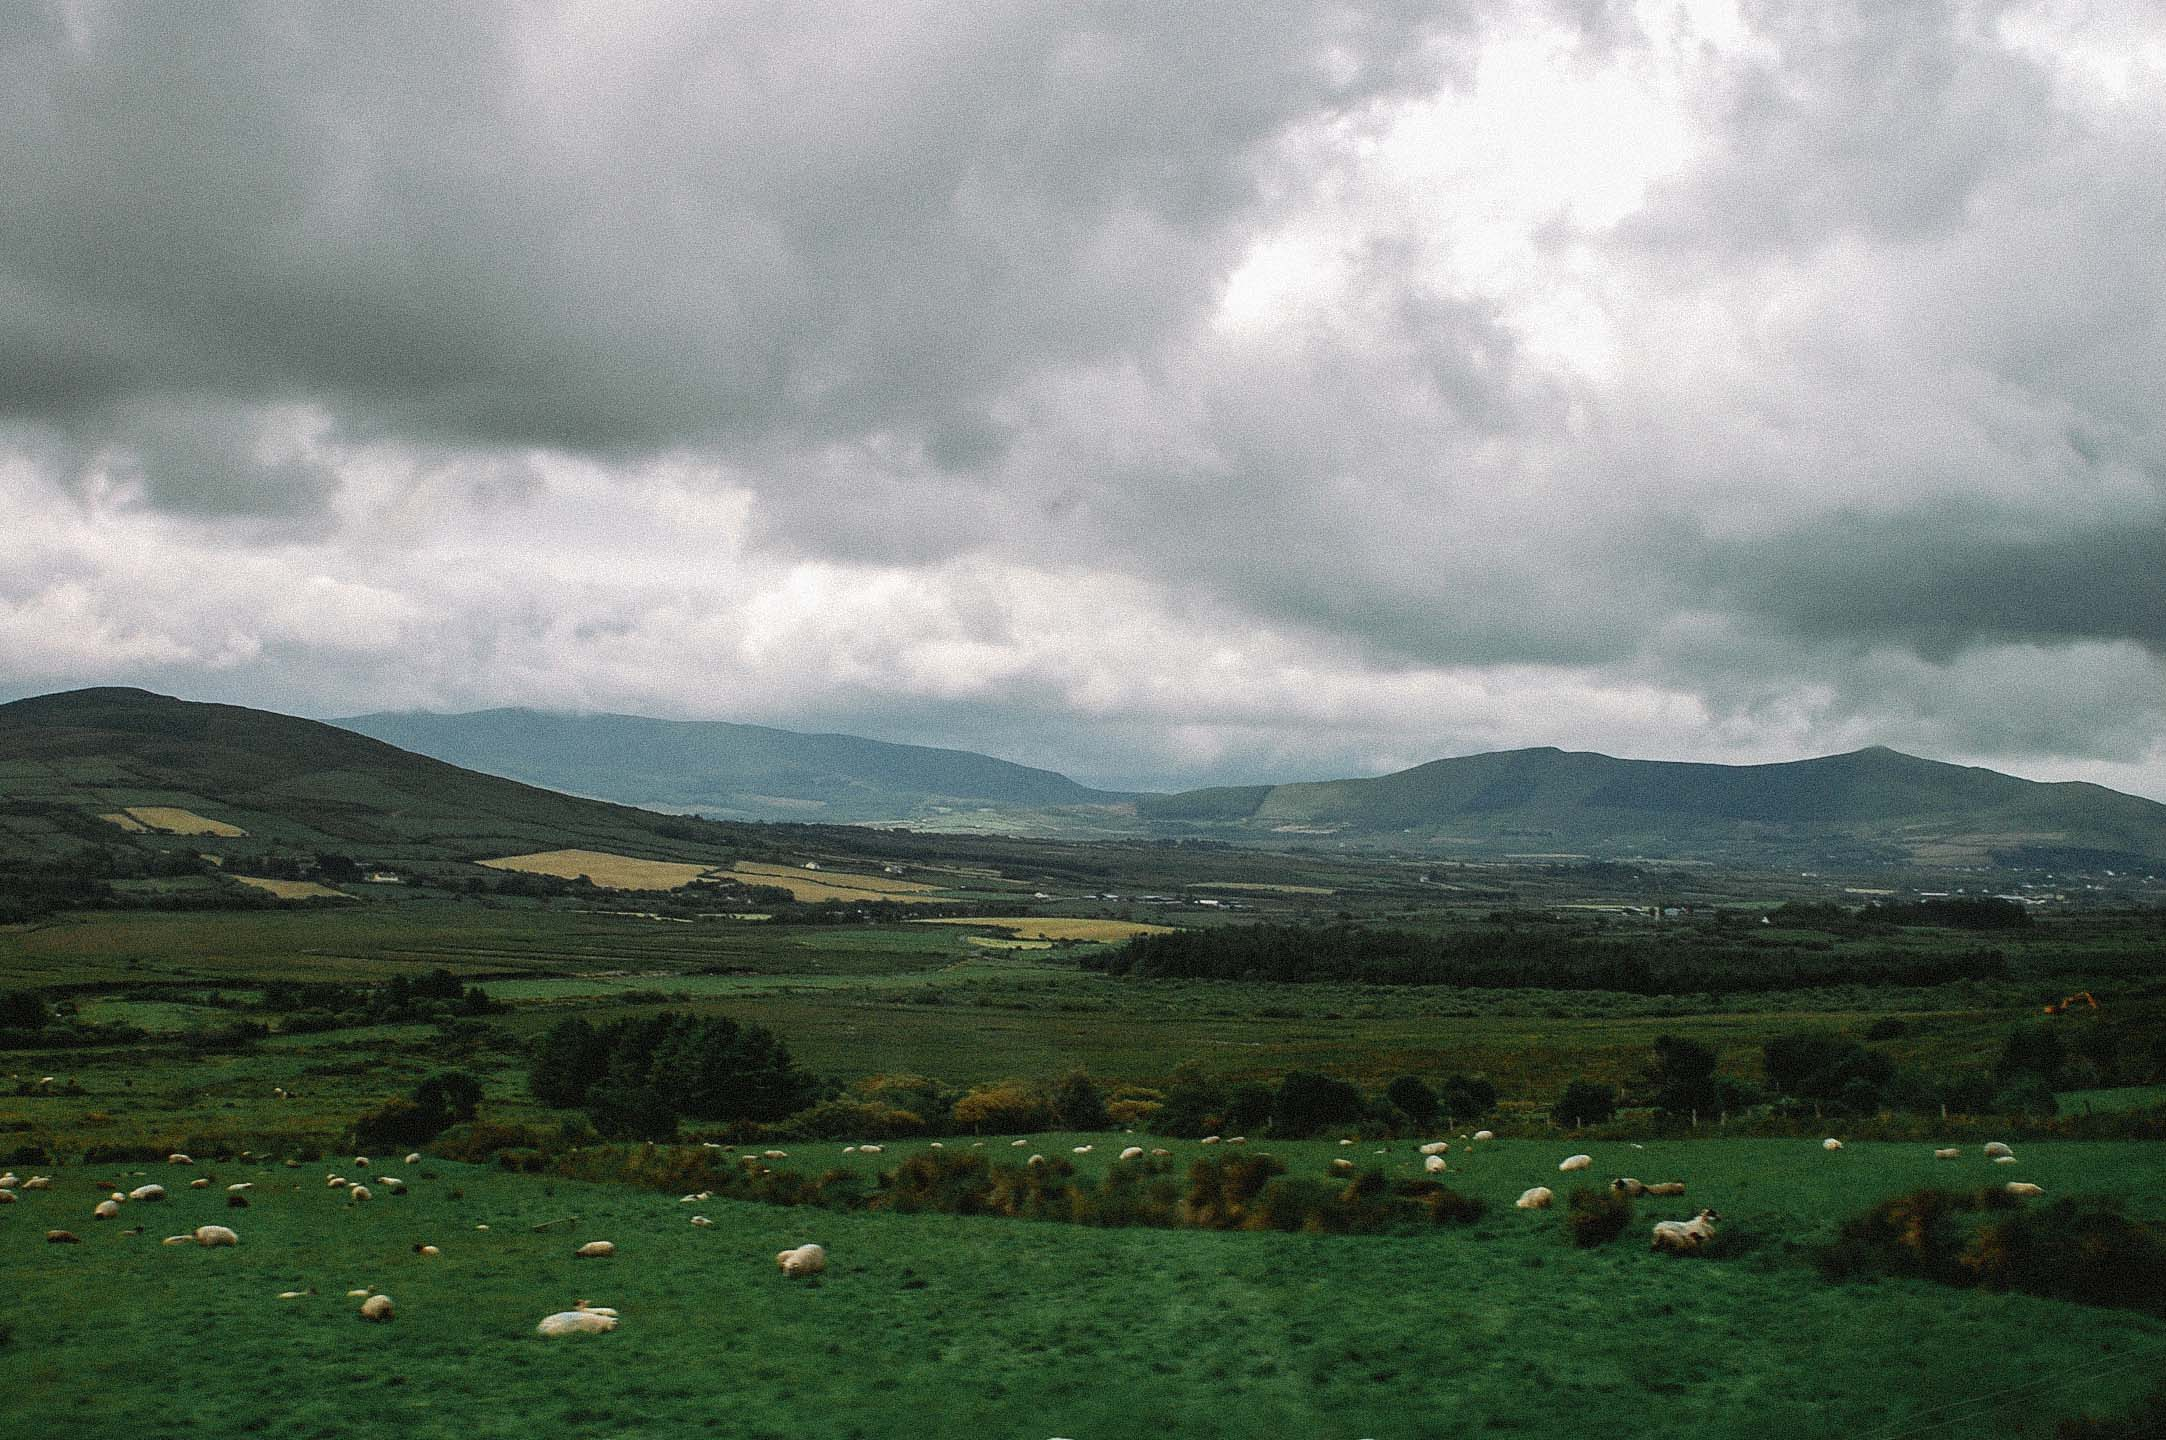 More Cows Roaming Ireland Countryside5287-2.jpg